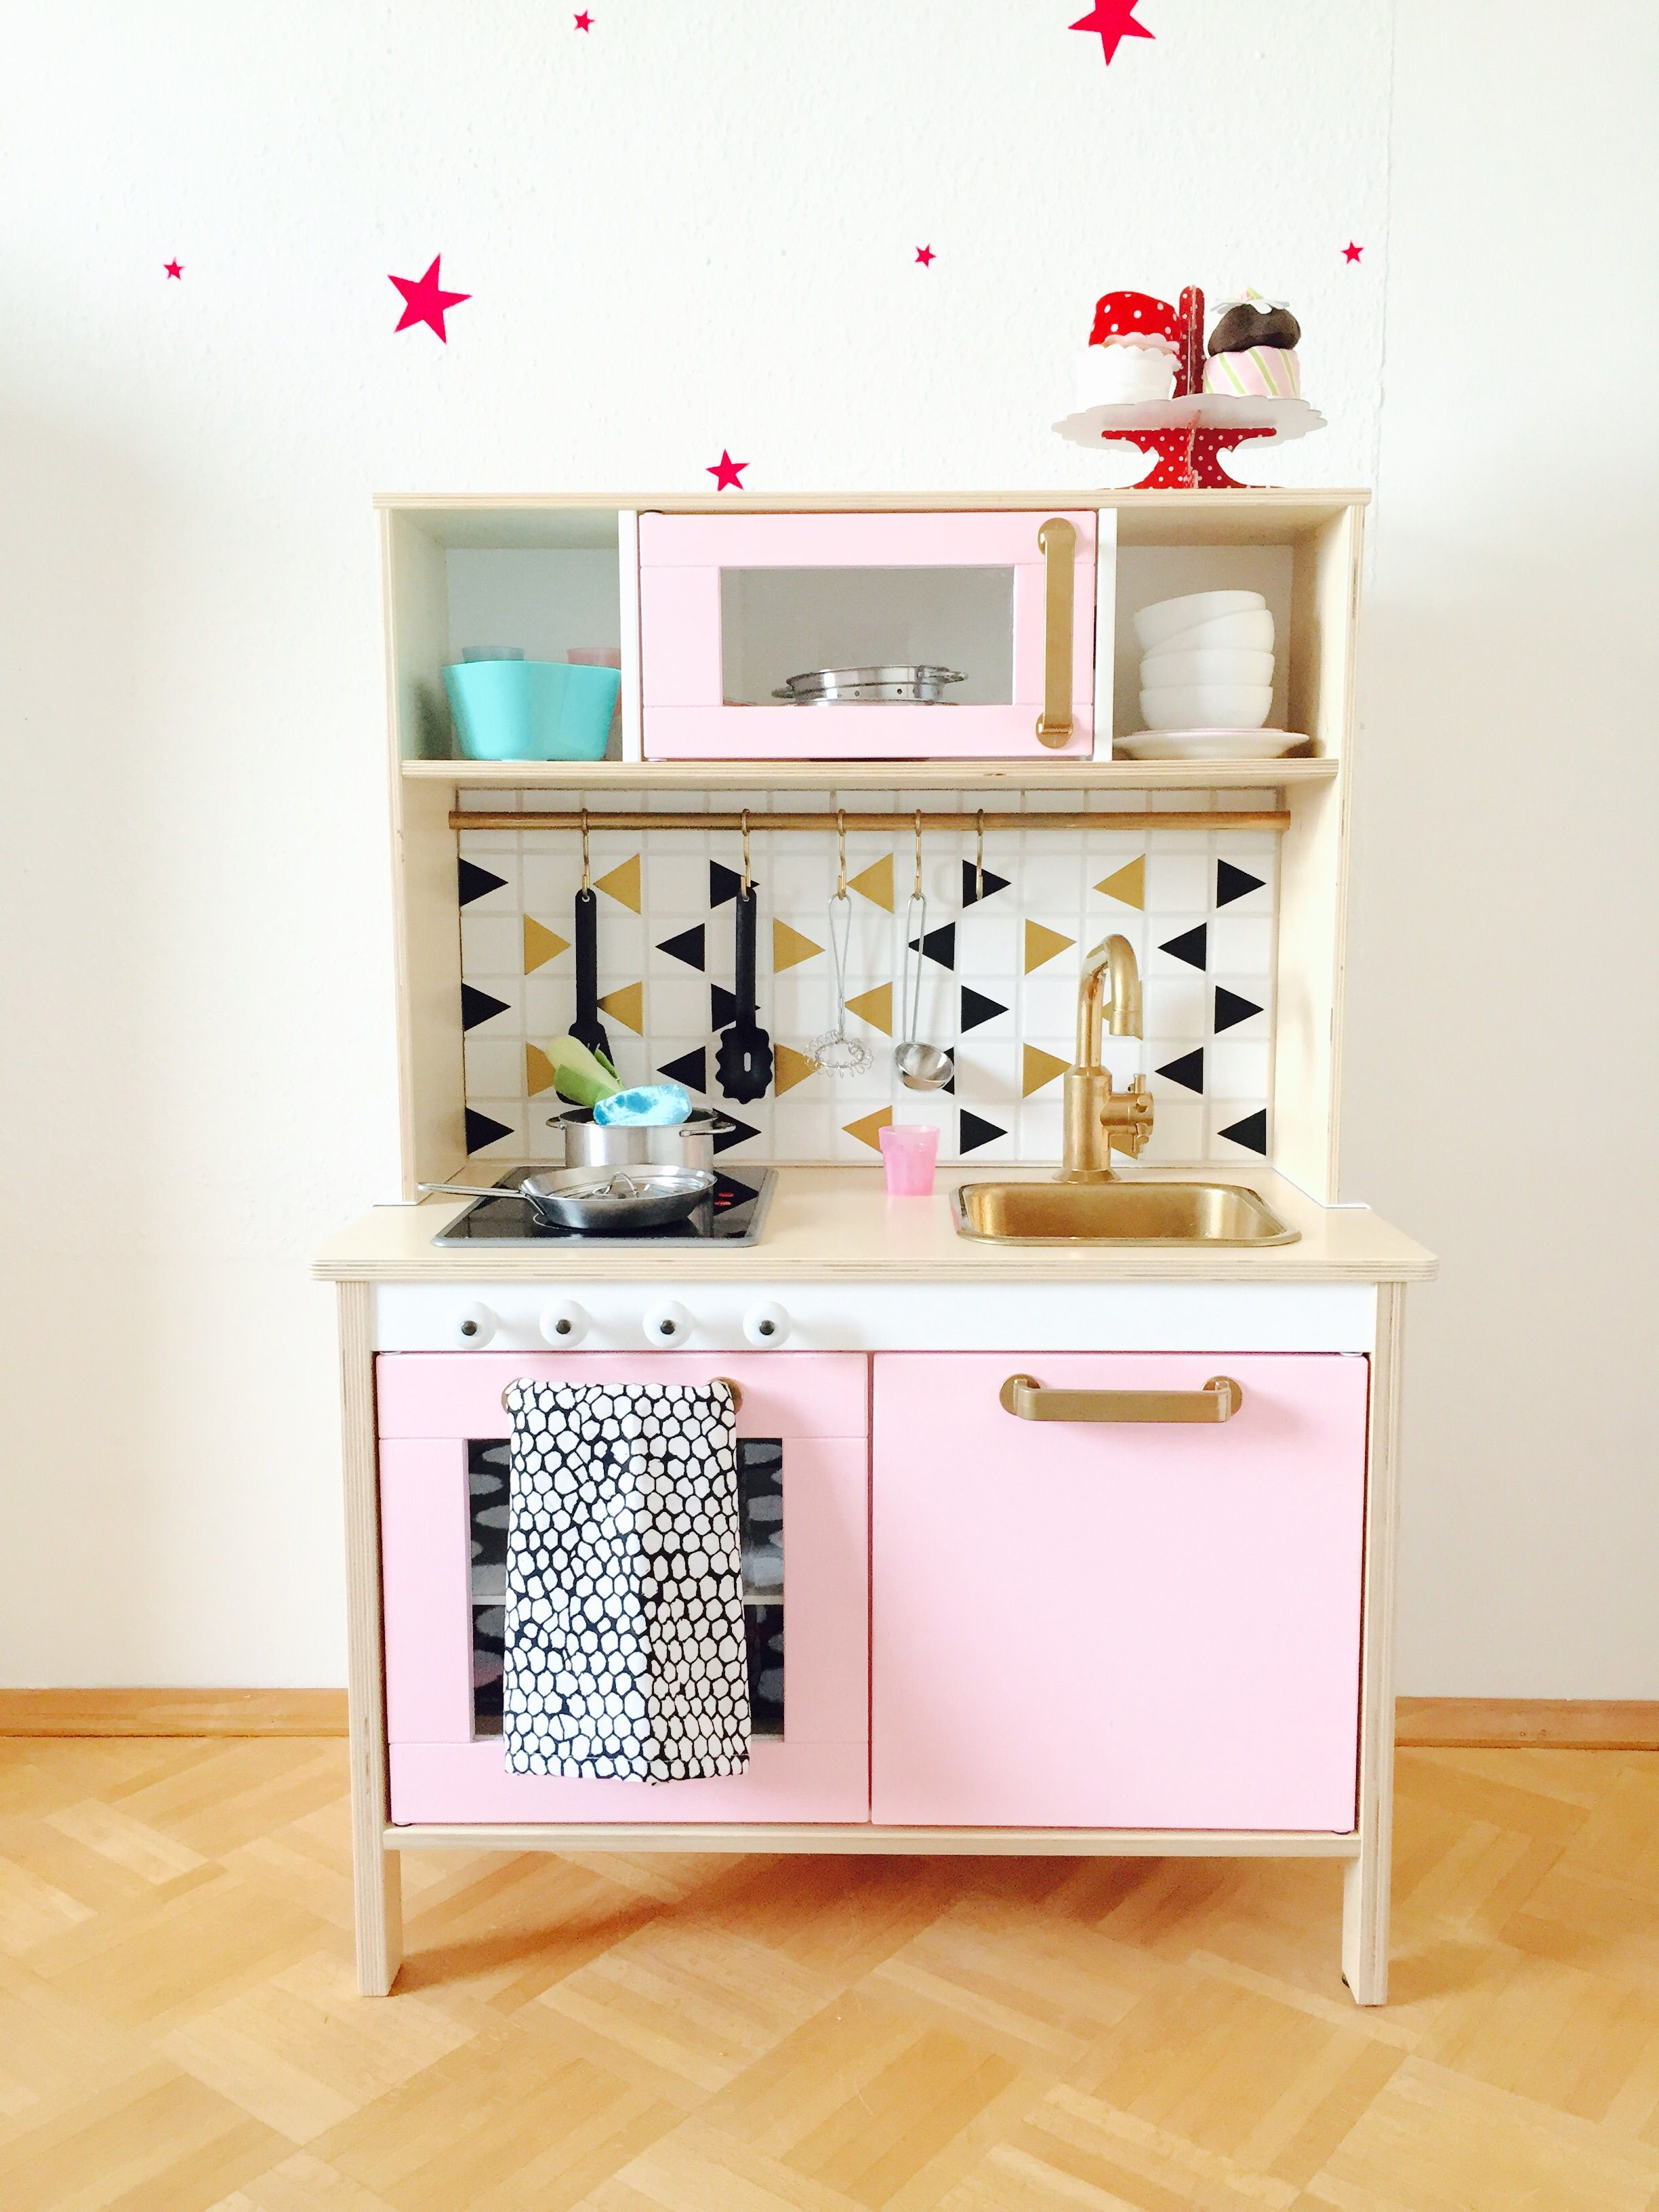 pimp your duktig ikea kinderkamer en ikea keuken. Black Bedroom Furniture Sets. Home Design Ideas